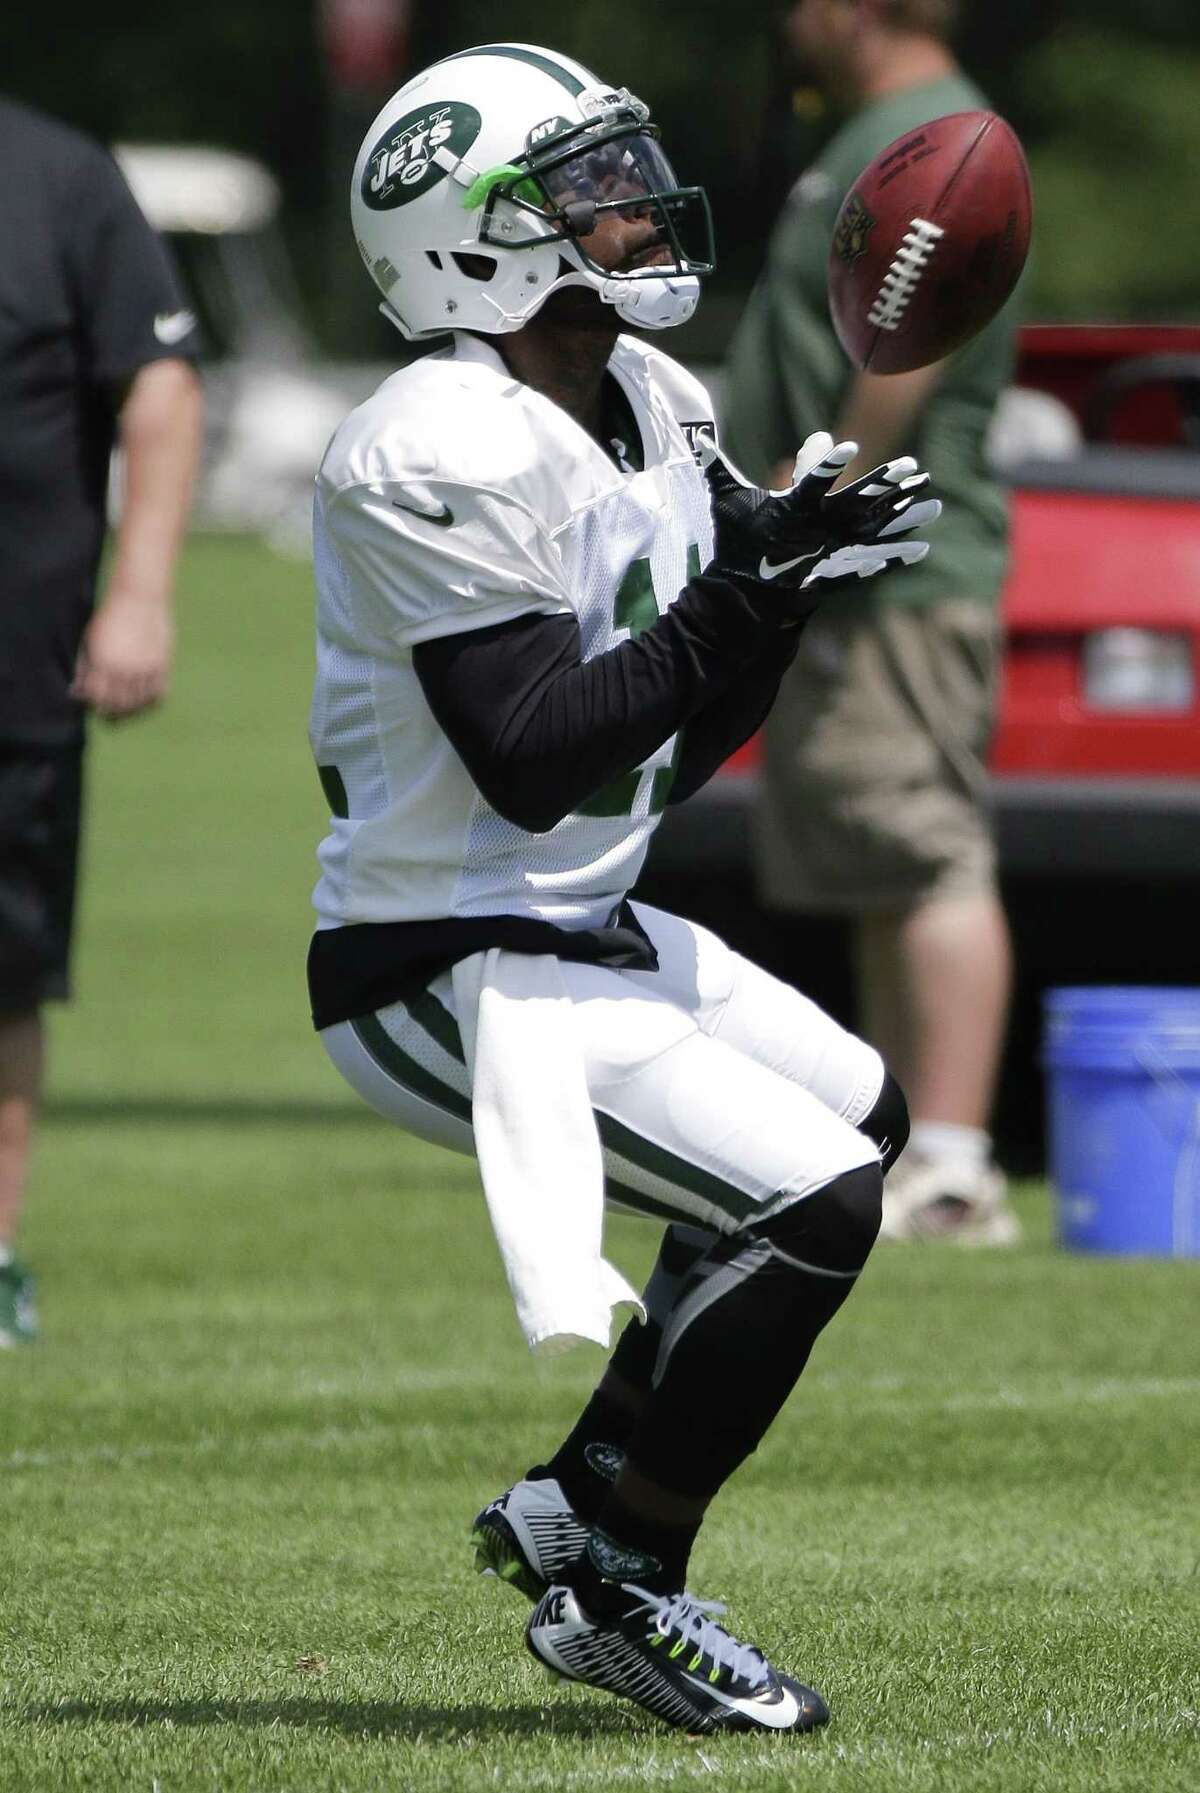 Jeremy Kerley is used to having to prove himself. Despite establishing himself as a sure-handed target for the New York Jets, he's in camp this summer trying to win the job as the No. 3 receiver.